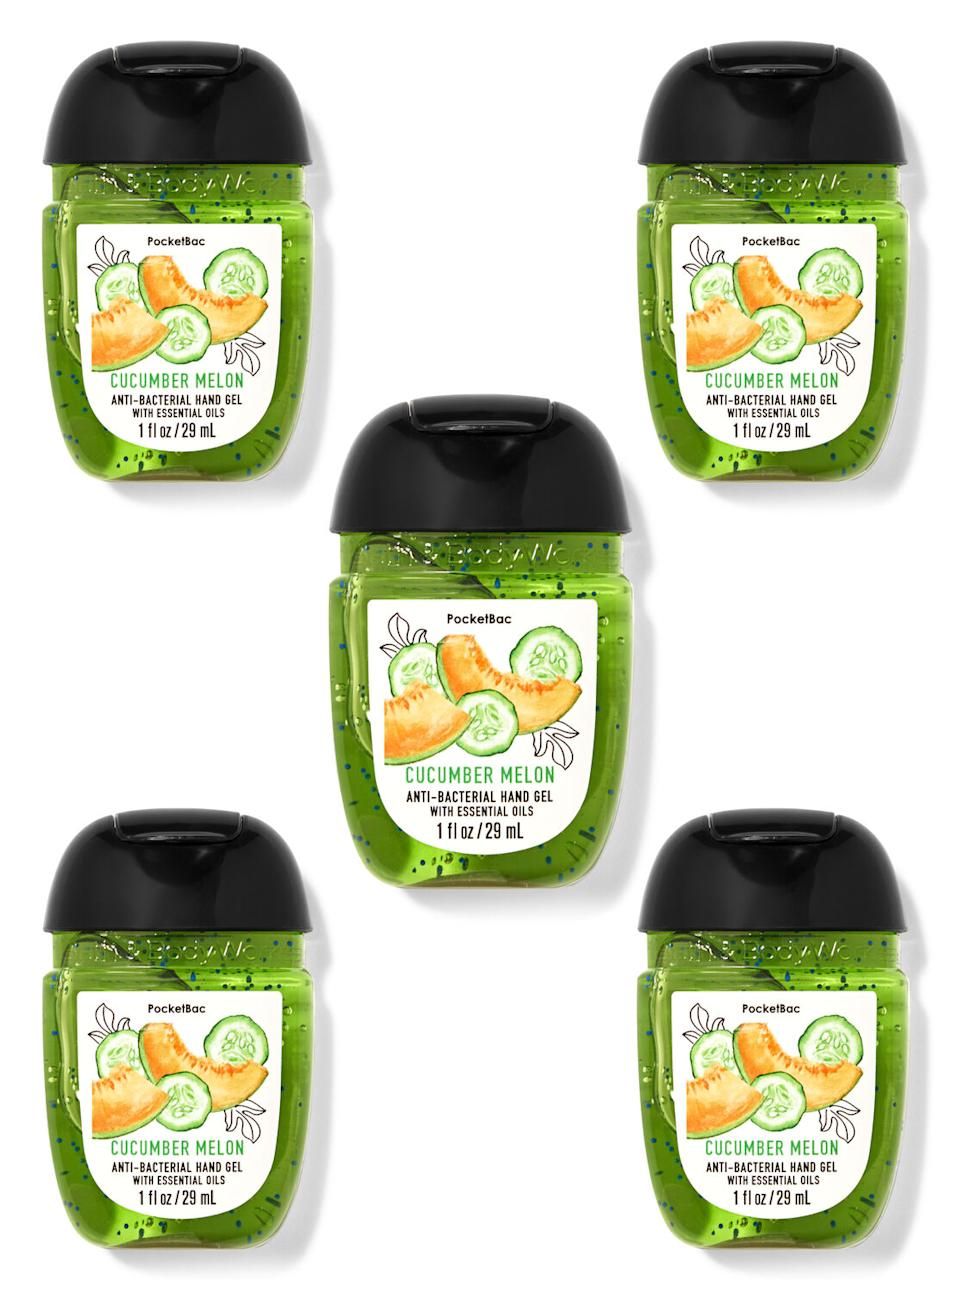 Cucumber Melon PocketBac Hand Sanitizers 5-Pack. Image via Bath and Body Works.